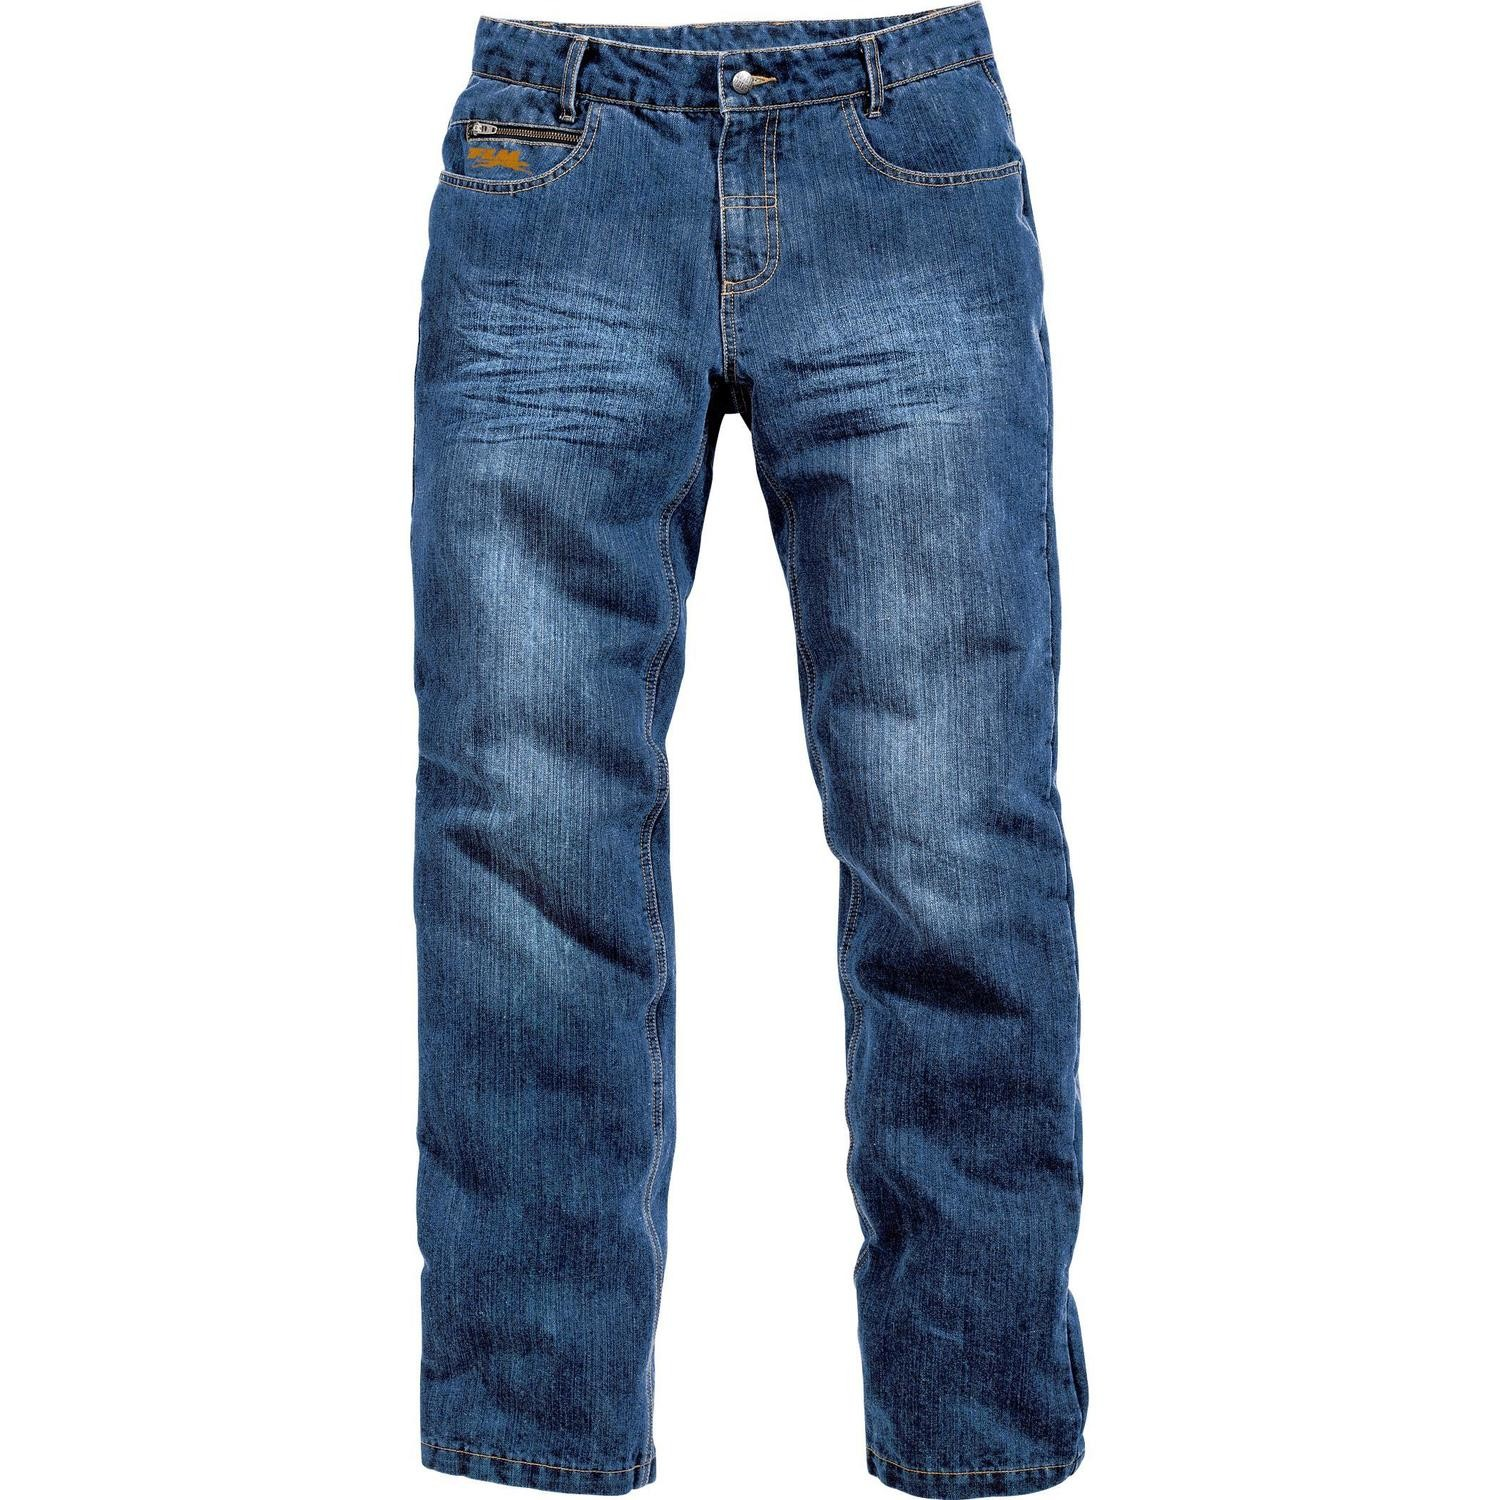 Aramid / cotton jeans 1.0 blue 33/34